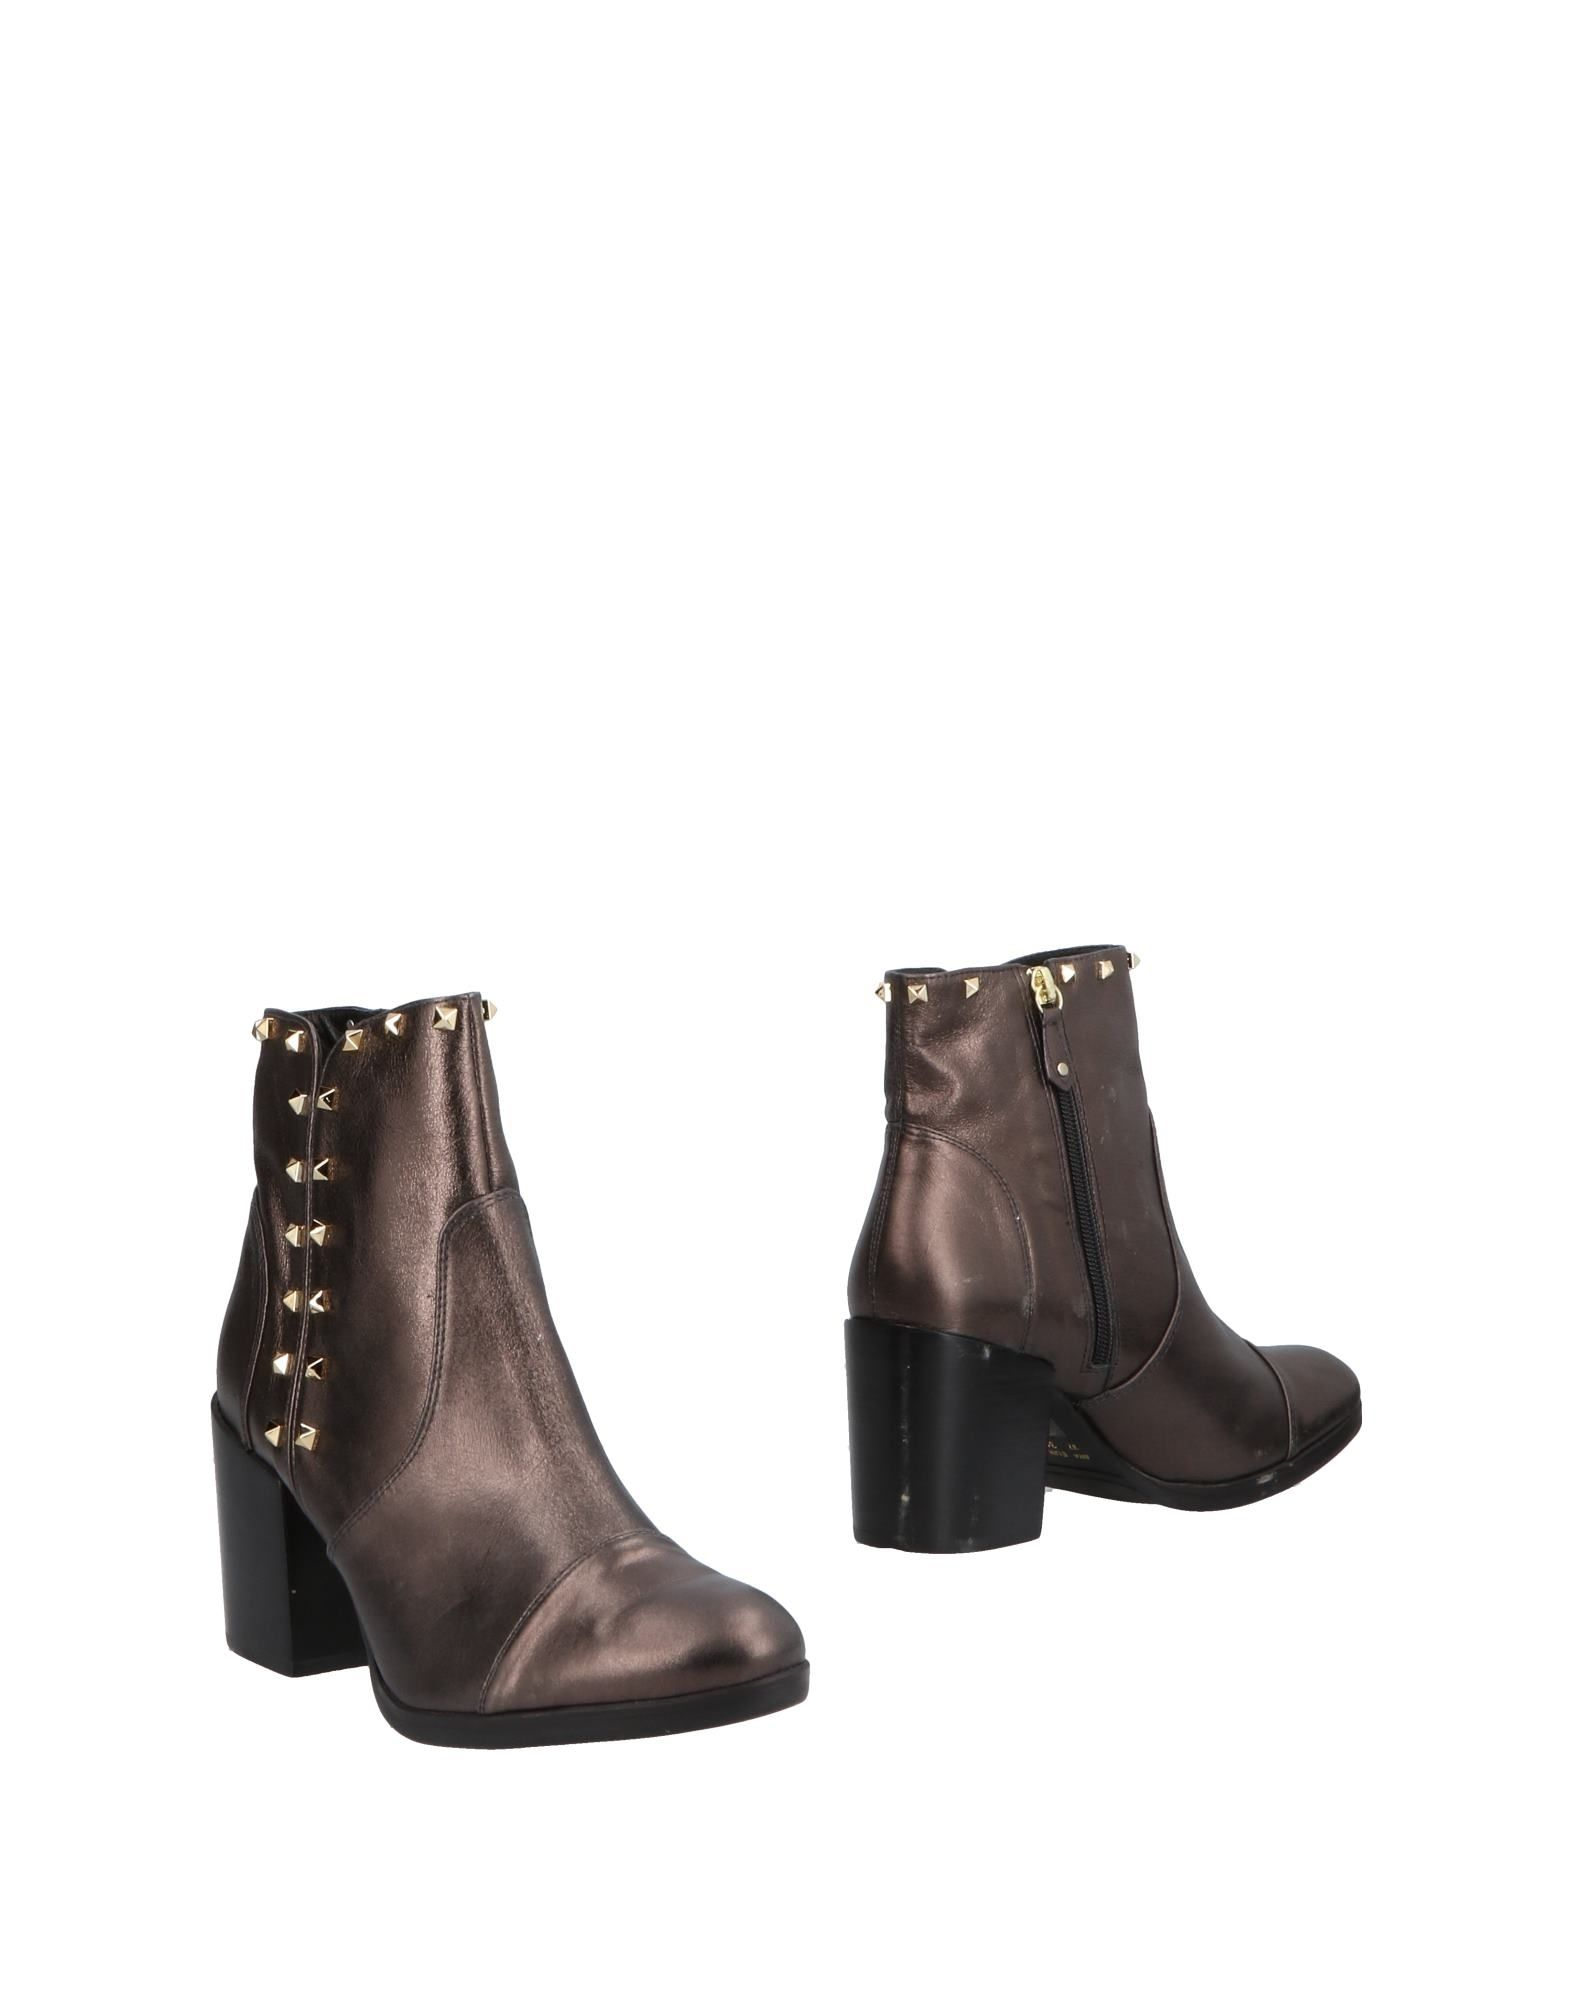 Primafila Ankle Boot Boots - Women Primafila Ankle Boots Boot online on  United Kingdom - 11504535WN a2b7b6